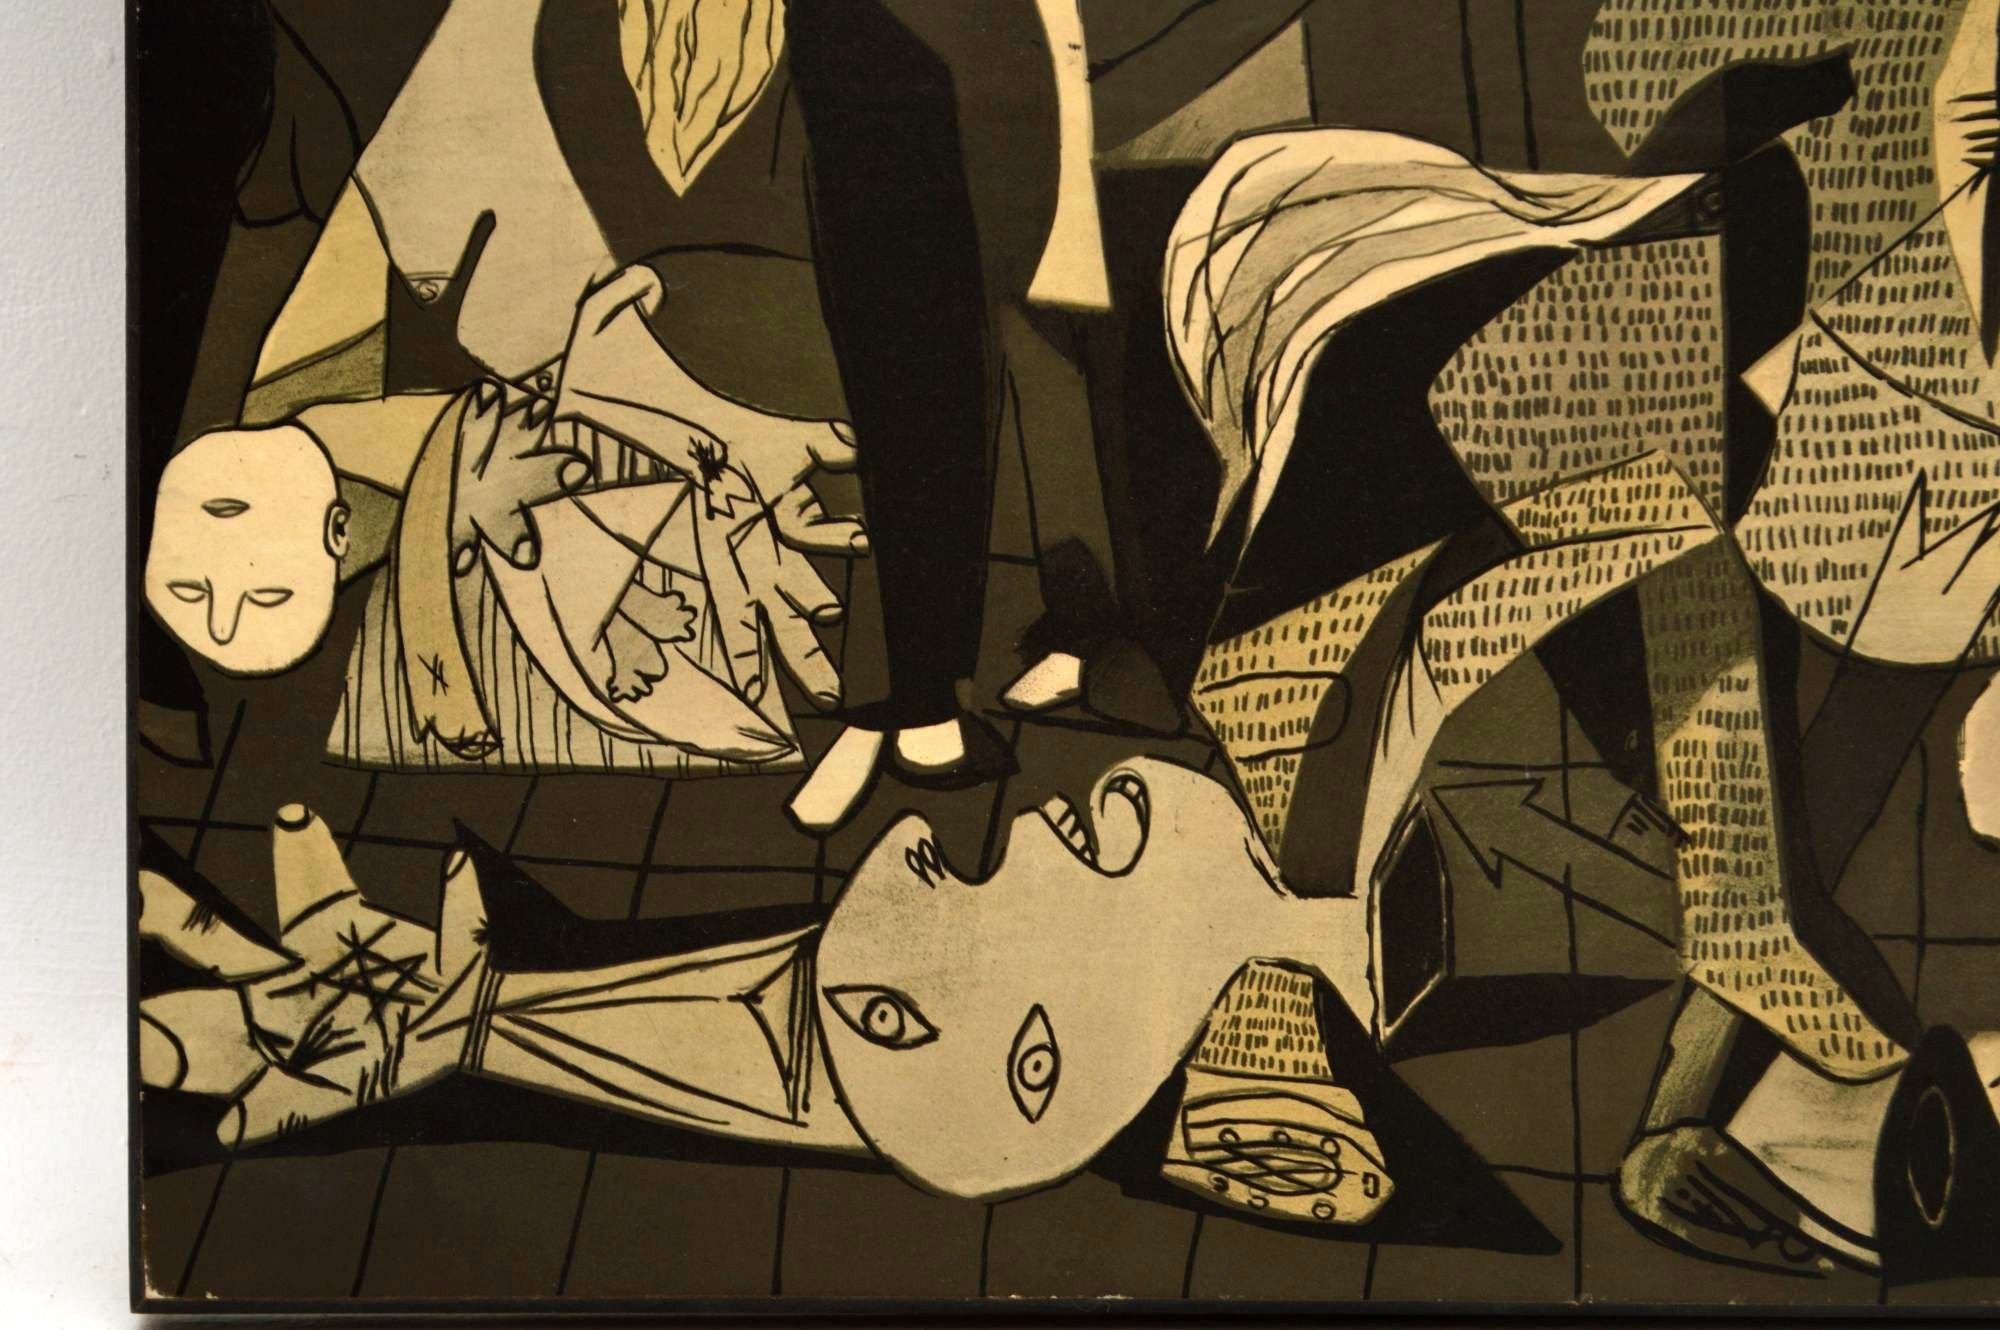 Guernica By Pablo Picasso Large Vintage Print On Board